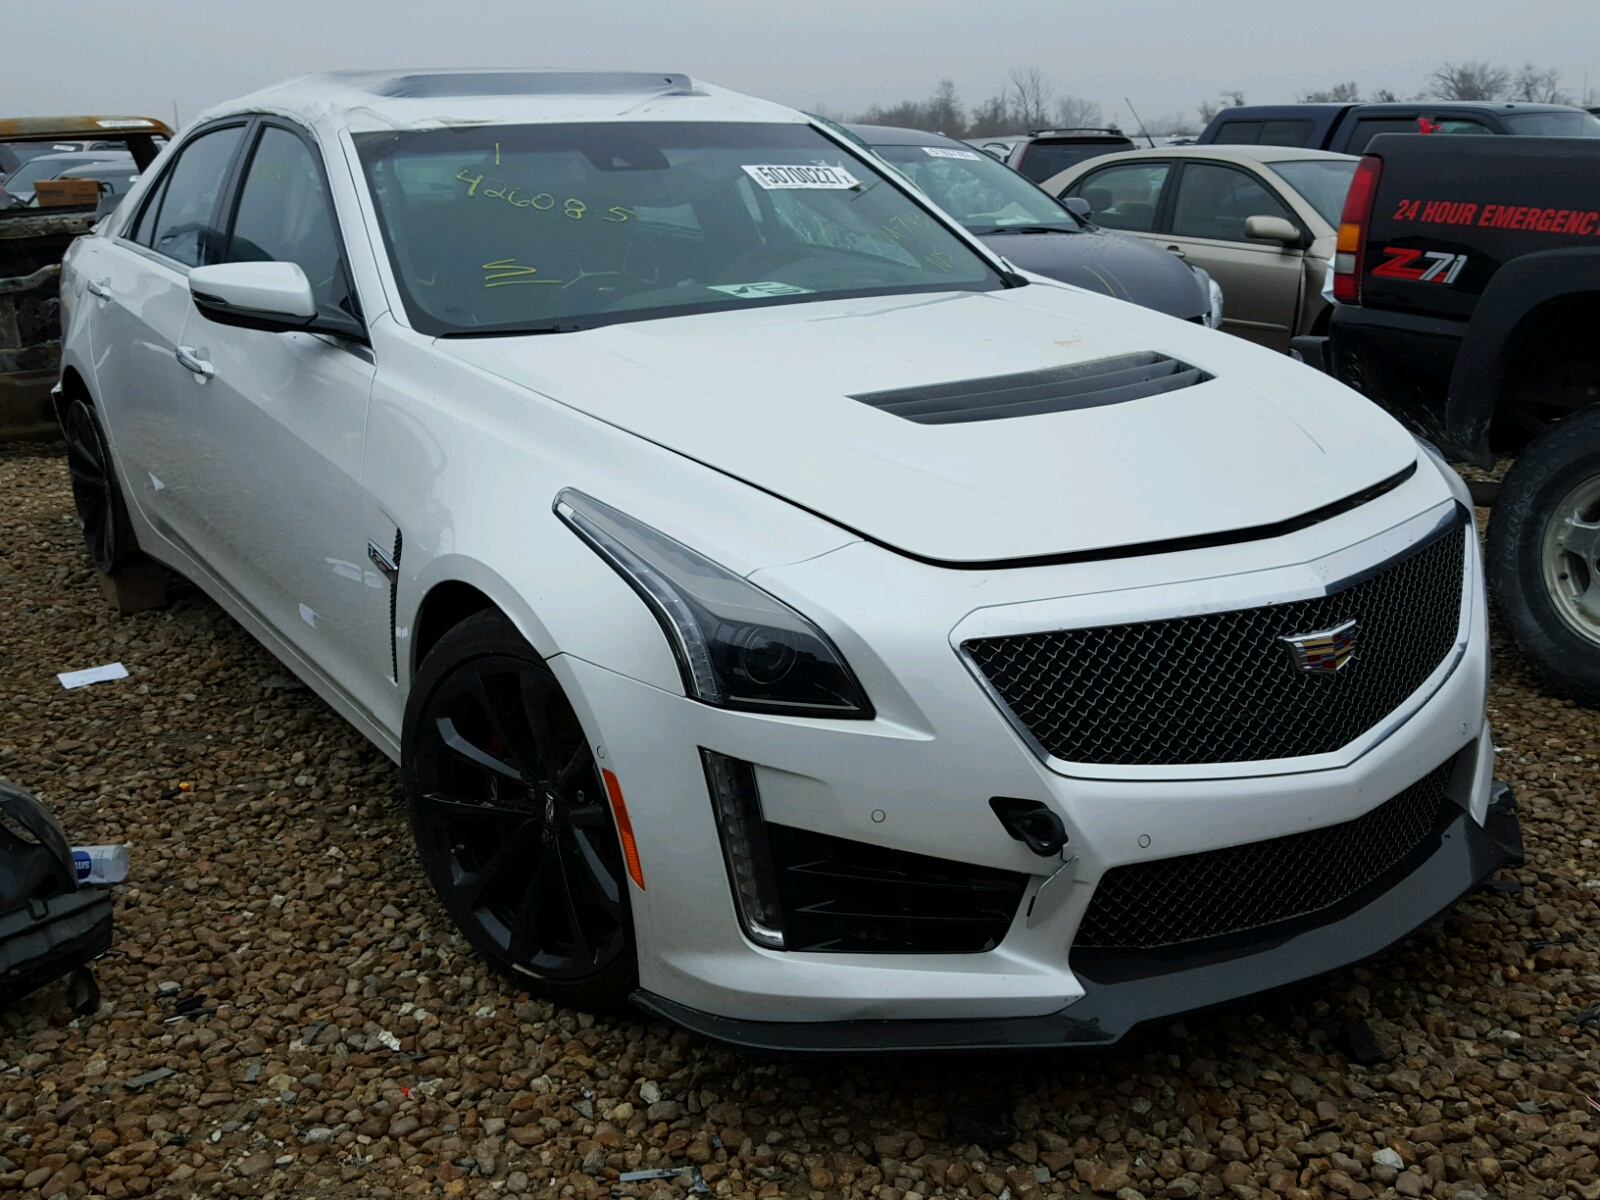 auto auction ended on vin 1g6a15s63h0124410 2017 cadillac cts v in tx austin. Black Bedroom Furniture Sets. Home Design Ideas